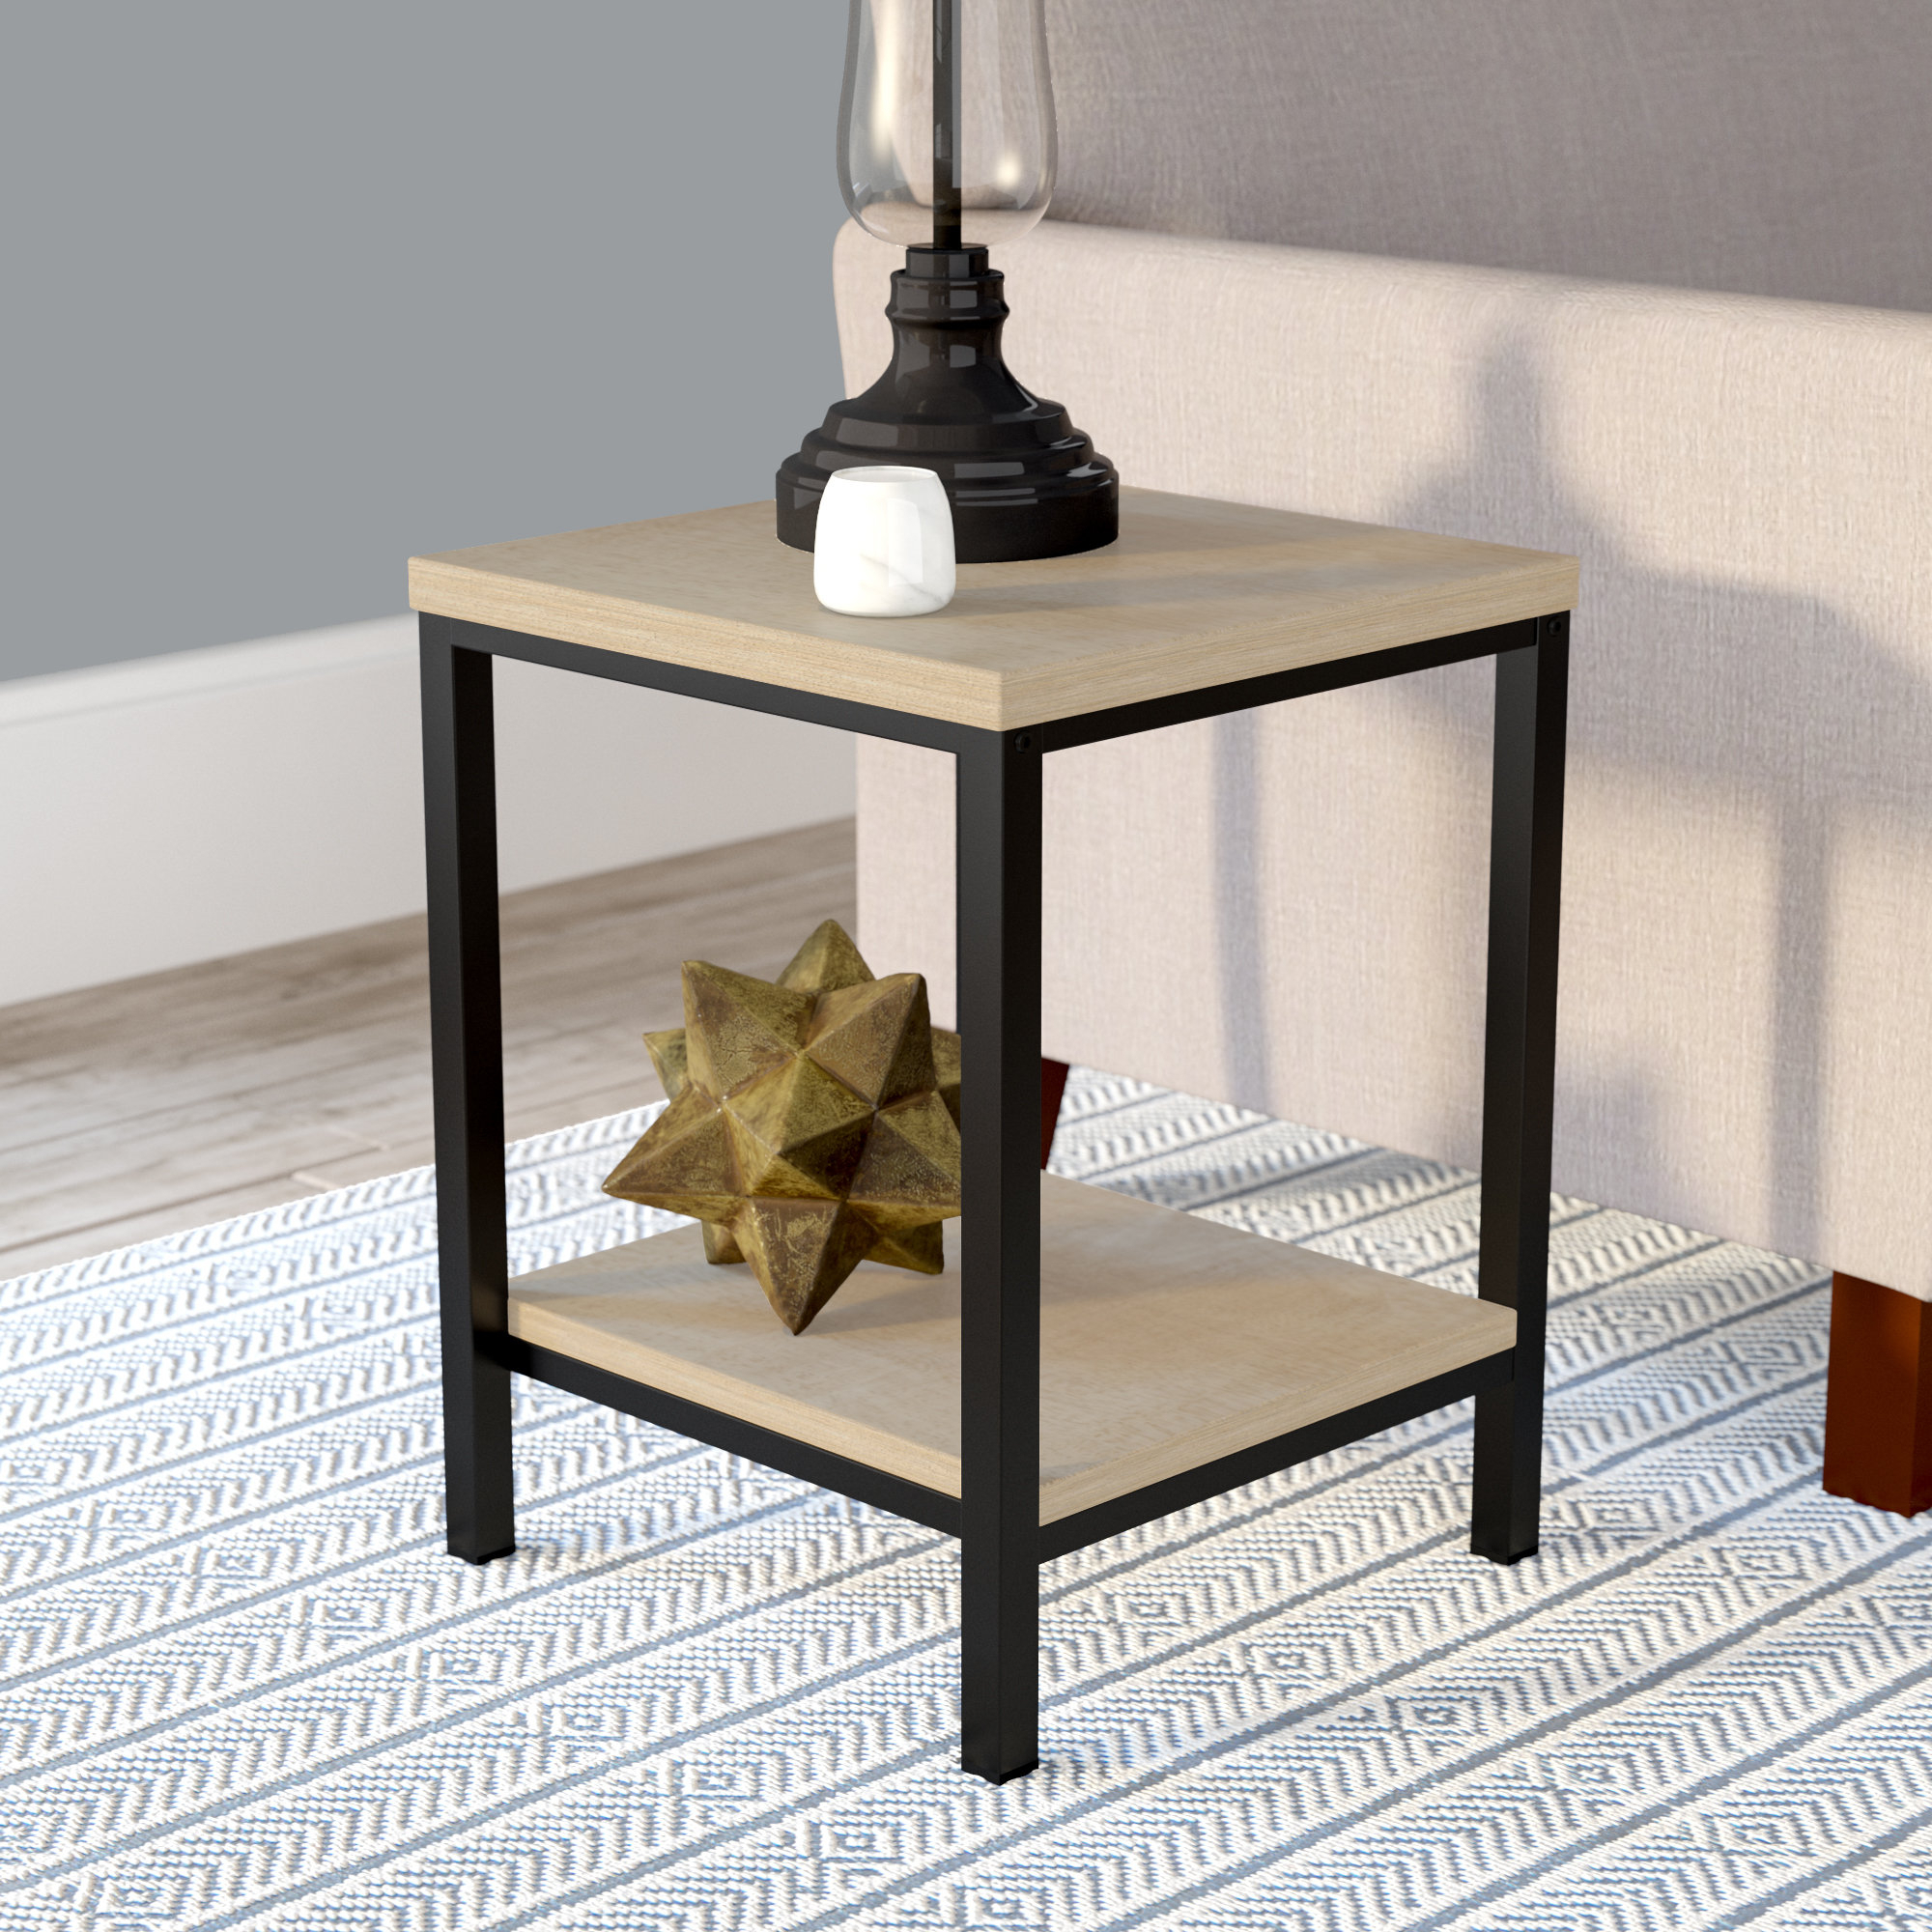 Wayfair Regarding Large Scale Chinese Farmhouse Coffee Tables (View 13 of 20)